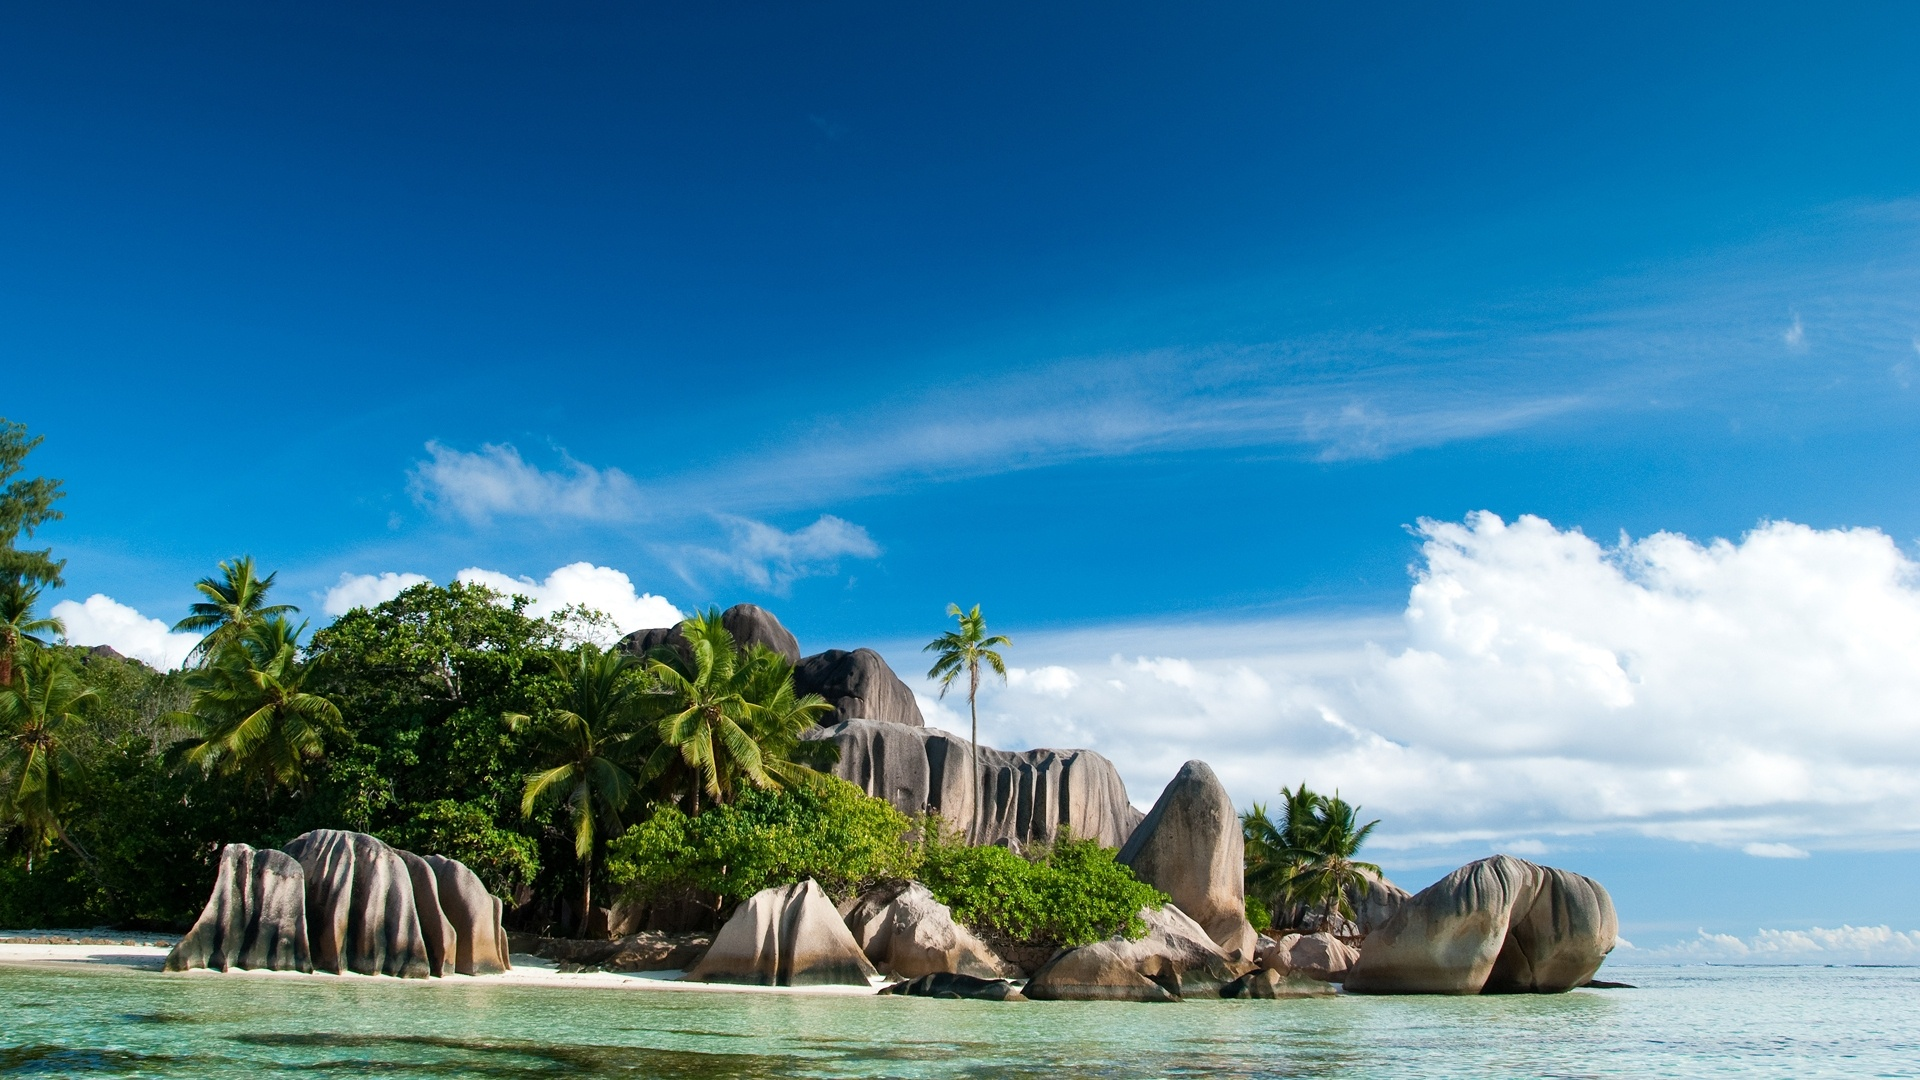 Seychelles Islands Landscape